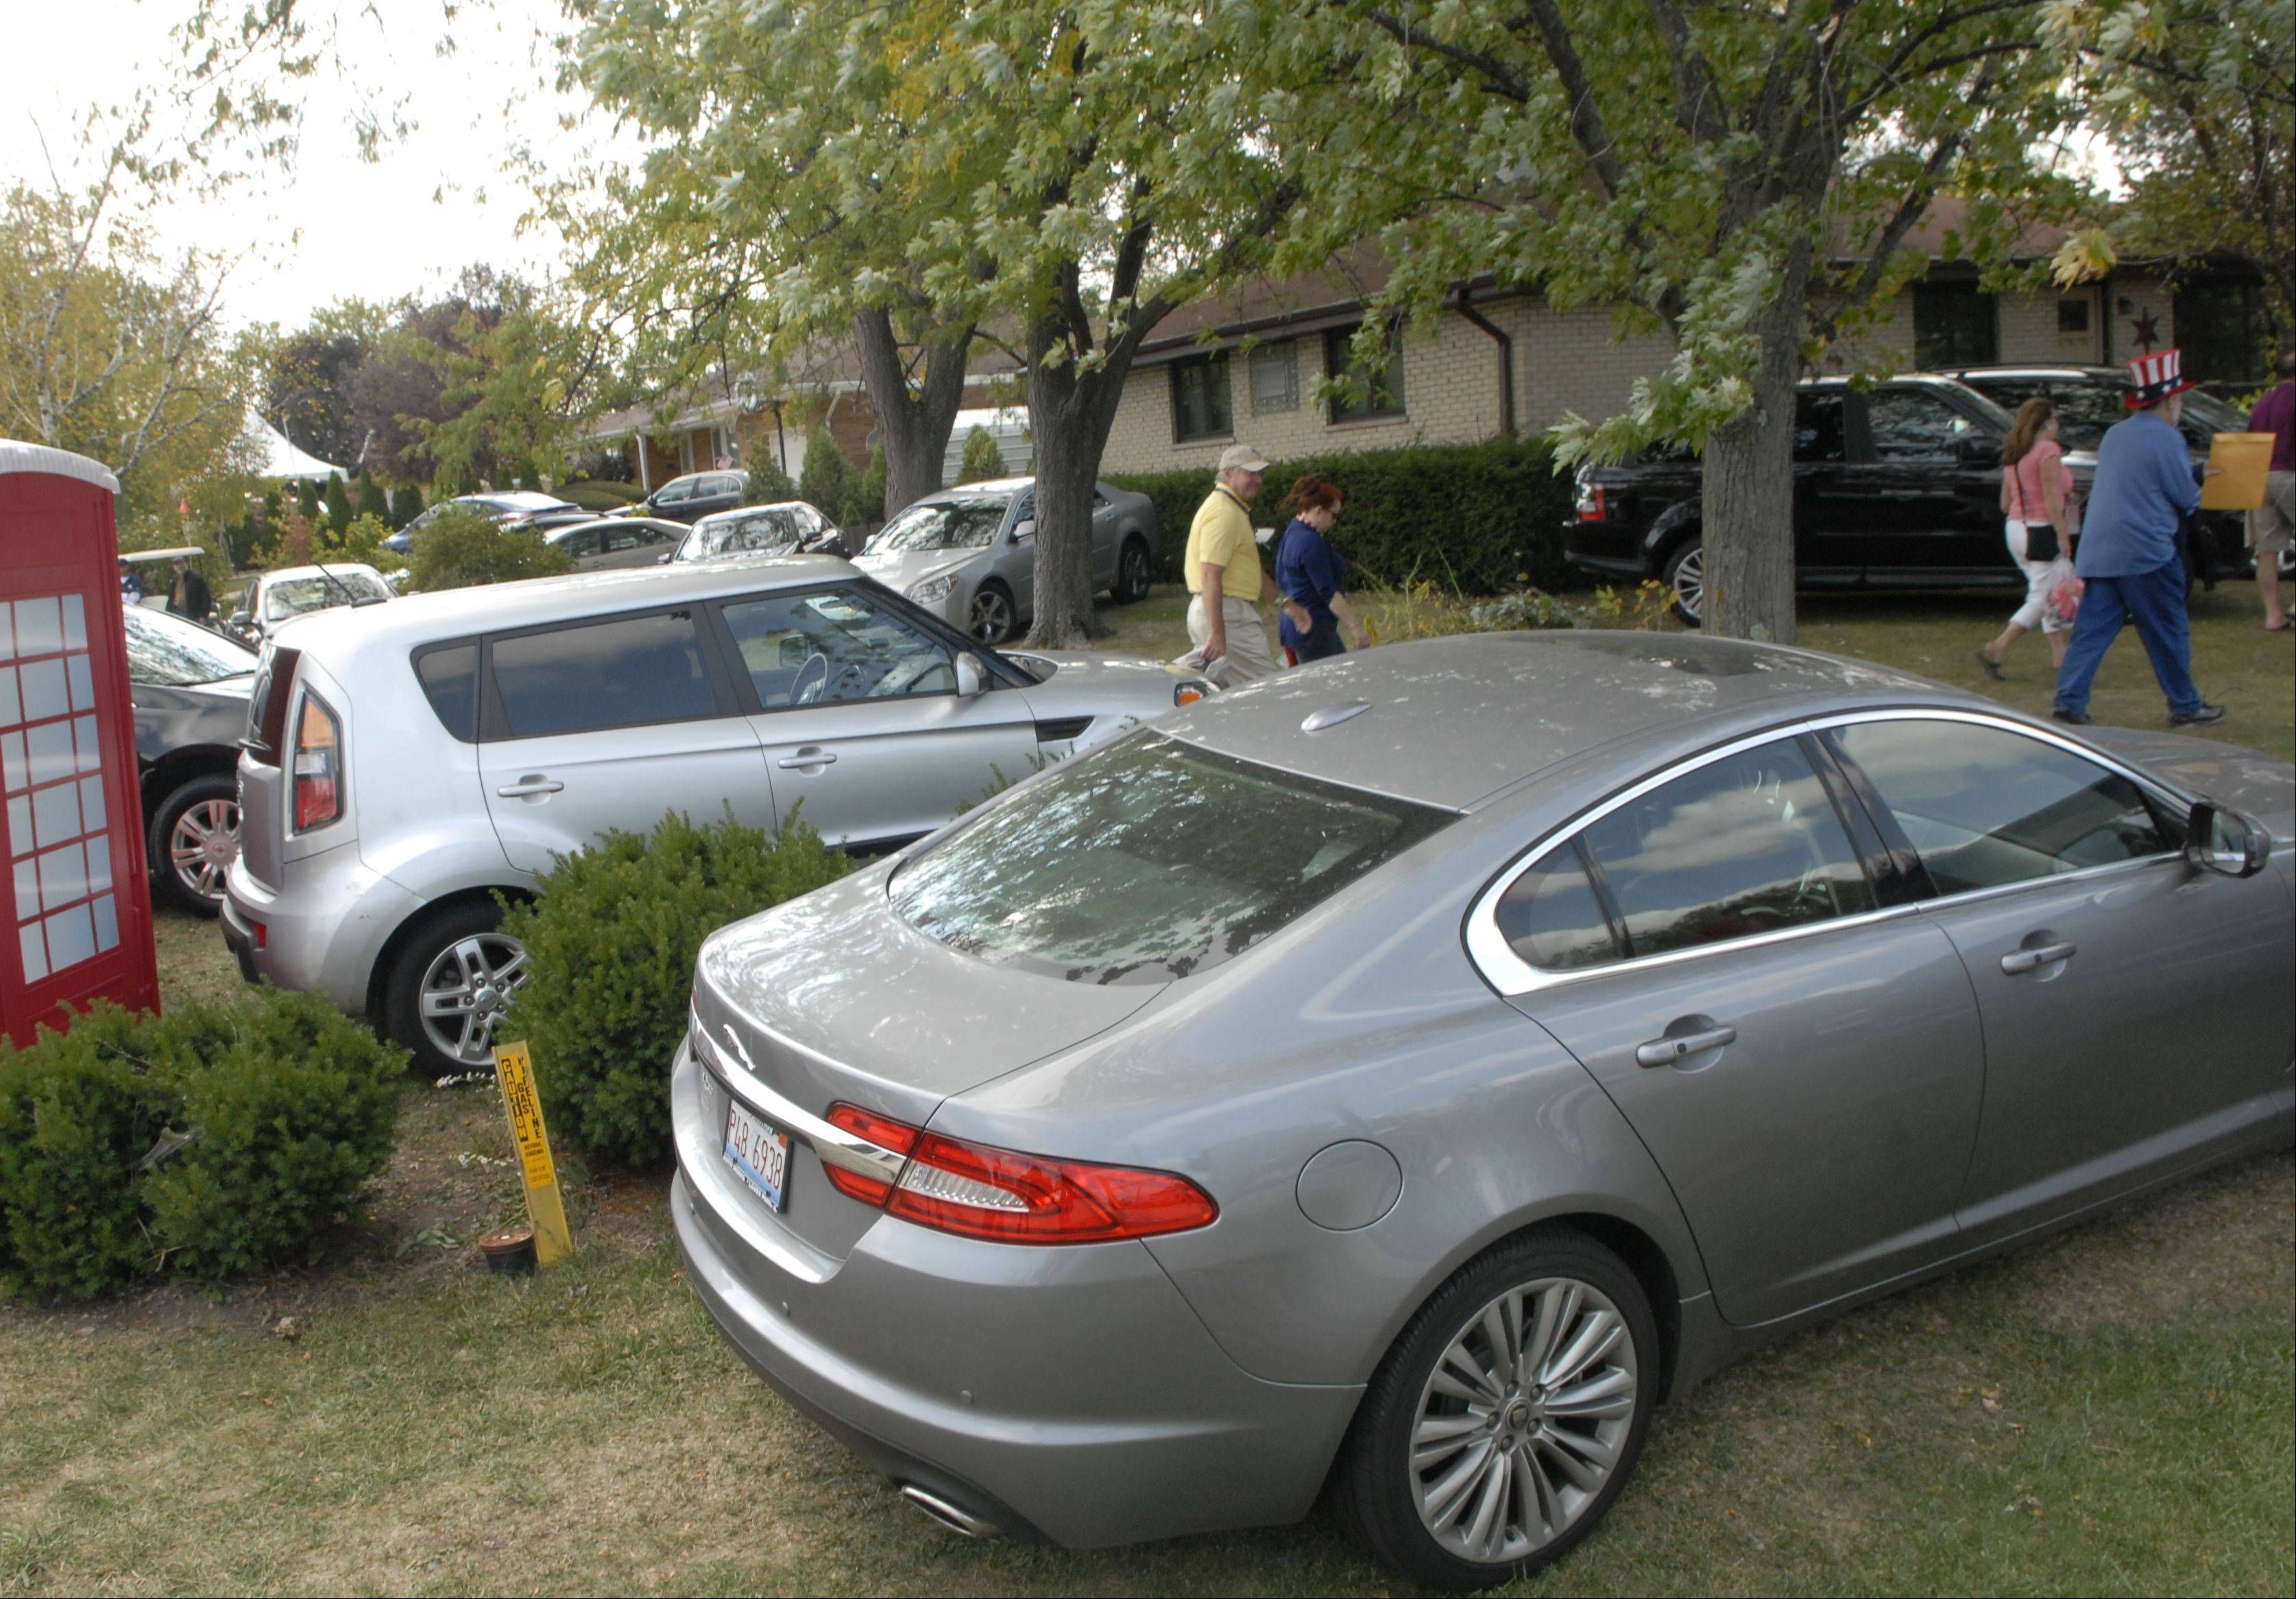 Many homeowners along Medinah Road turned their yards into parking lots for easy access to the Ryder Cup course, and are charging roughly $20 per day.